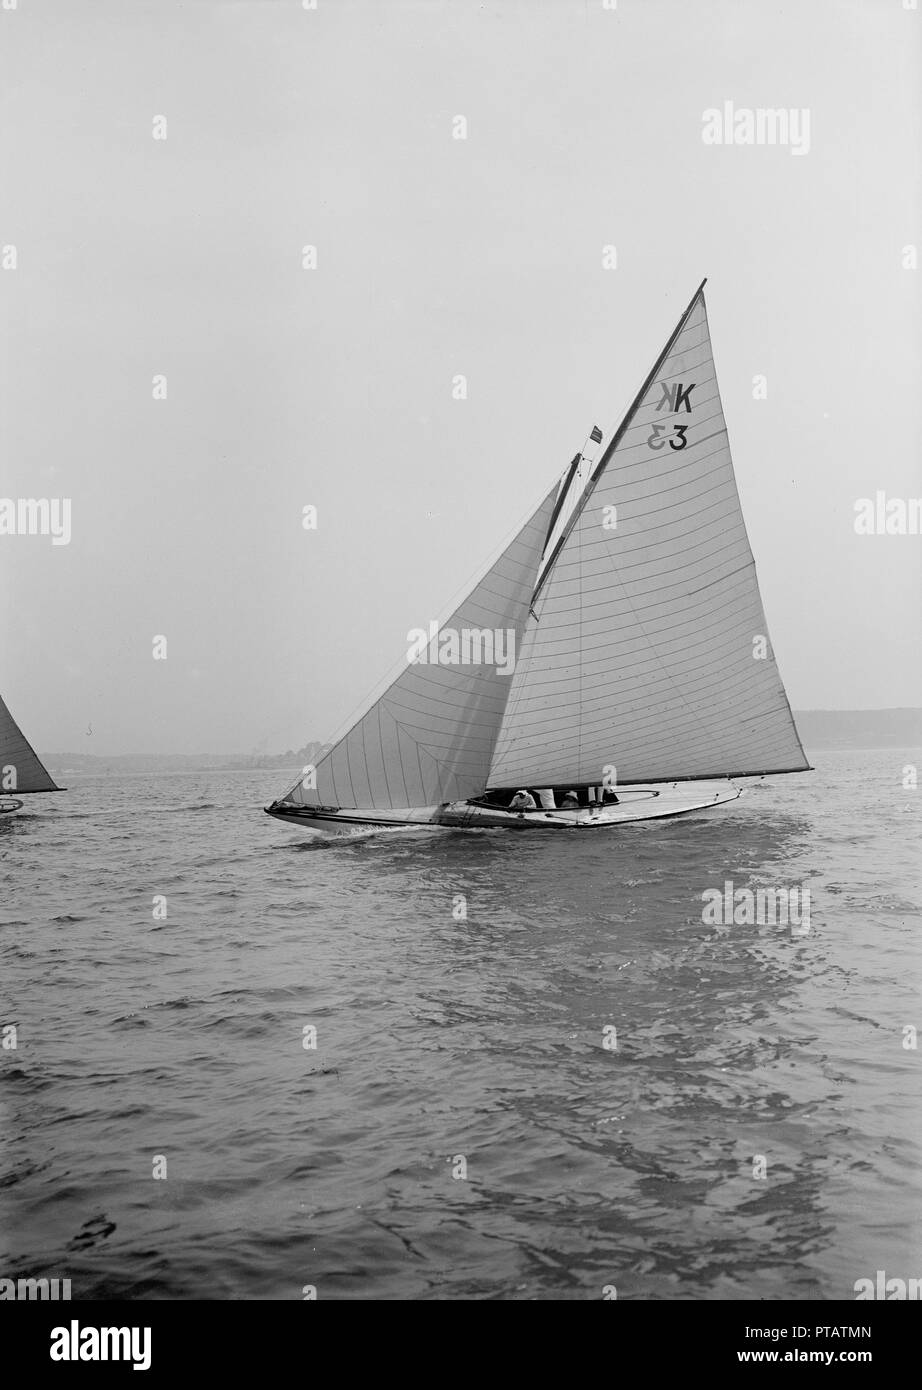 The 7 Metre 'Ancora' (K3) sailing close-hauled, 1913. 'Ancora' went on to win gold medal in the 1920 Antwerp Olympics. - Stock Image